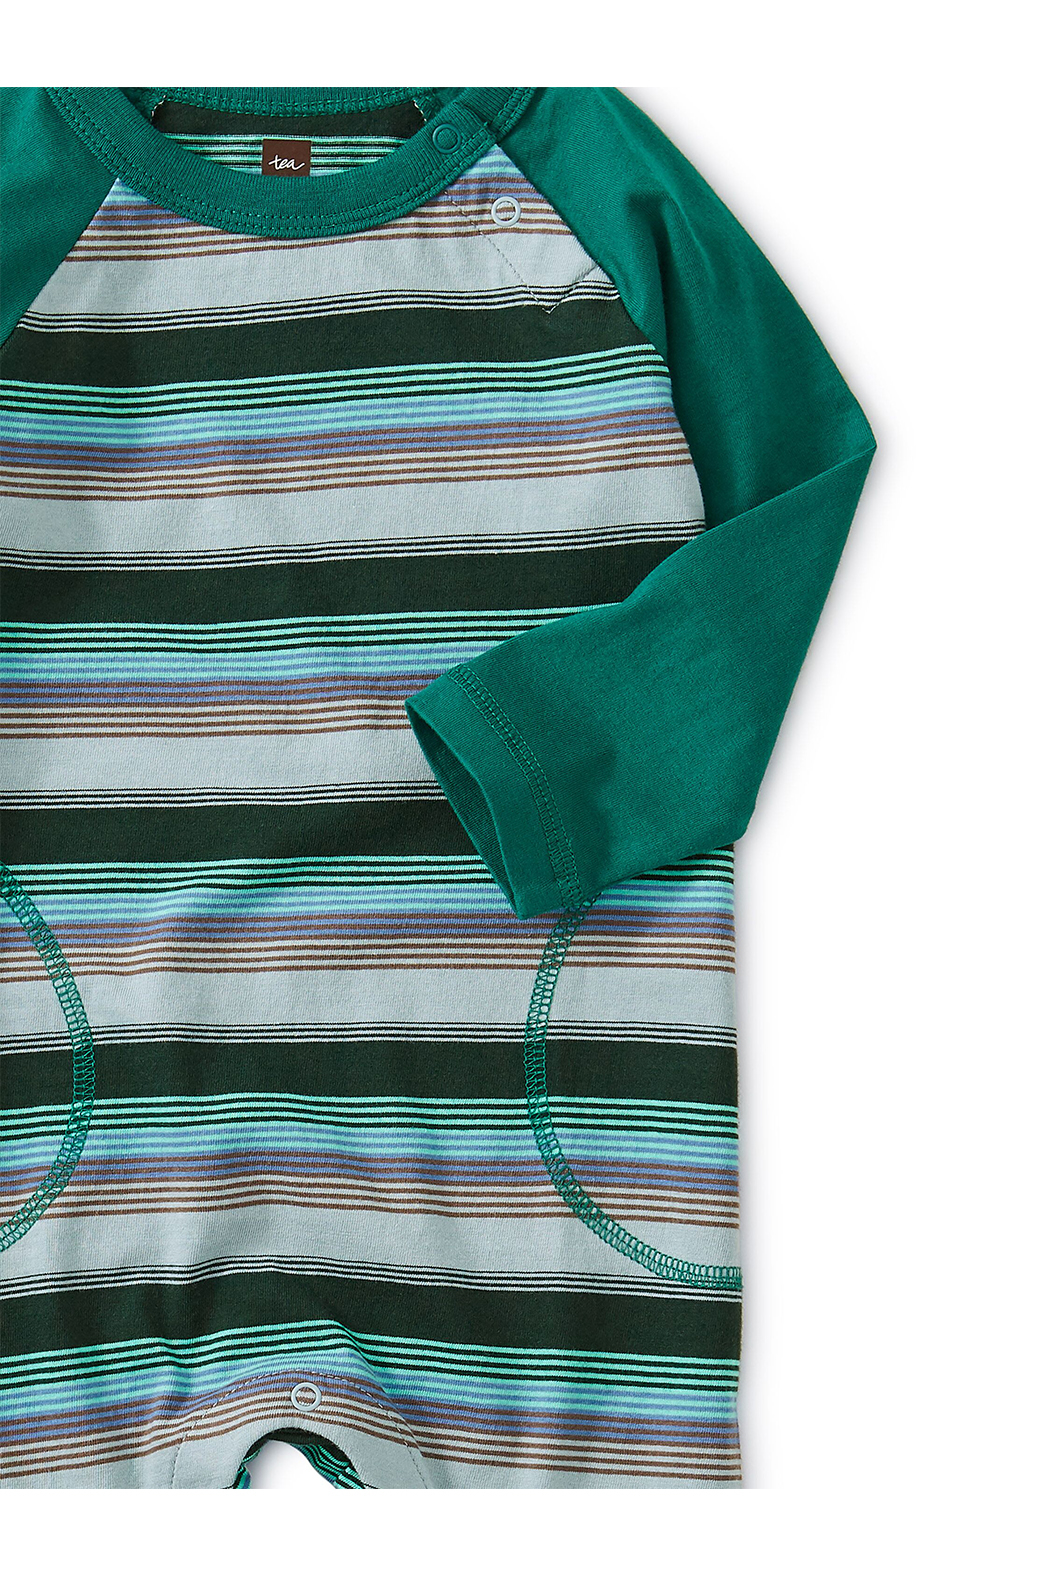 Tea Collection Striped Raglan Romper - Front Full Image